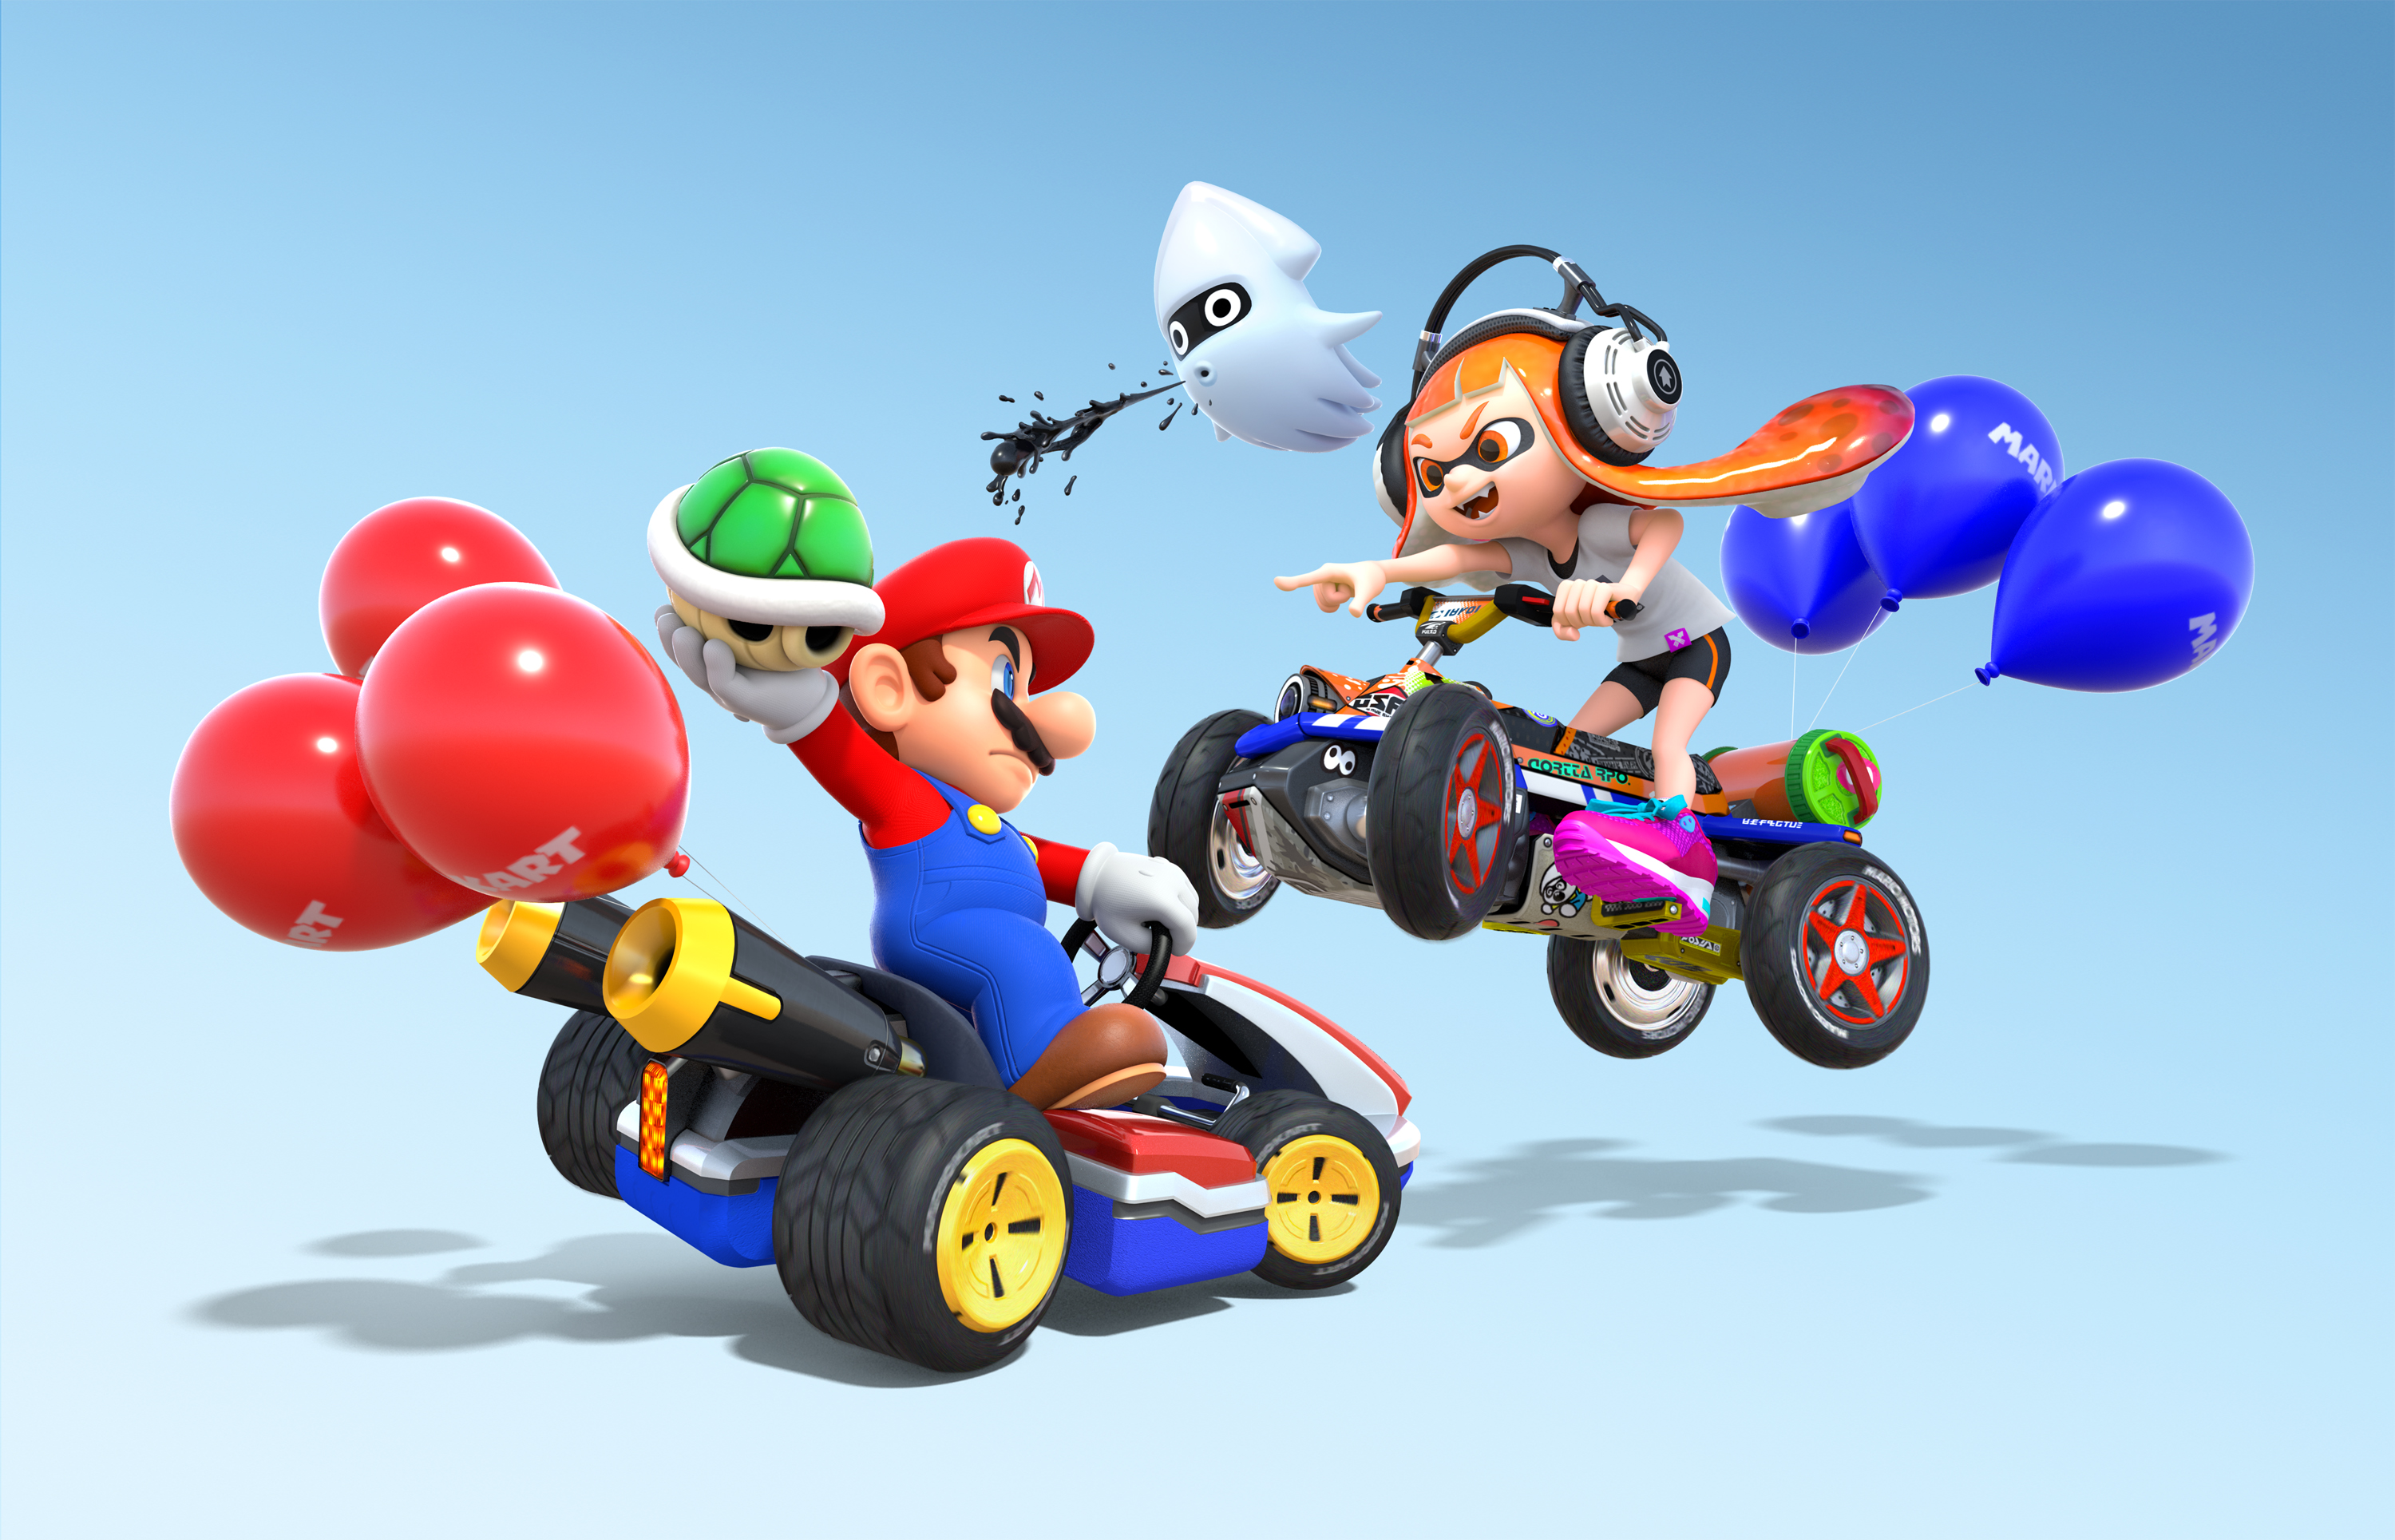 mario kart 8 deluxe wallpaper hd